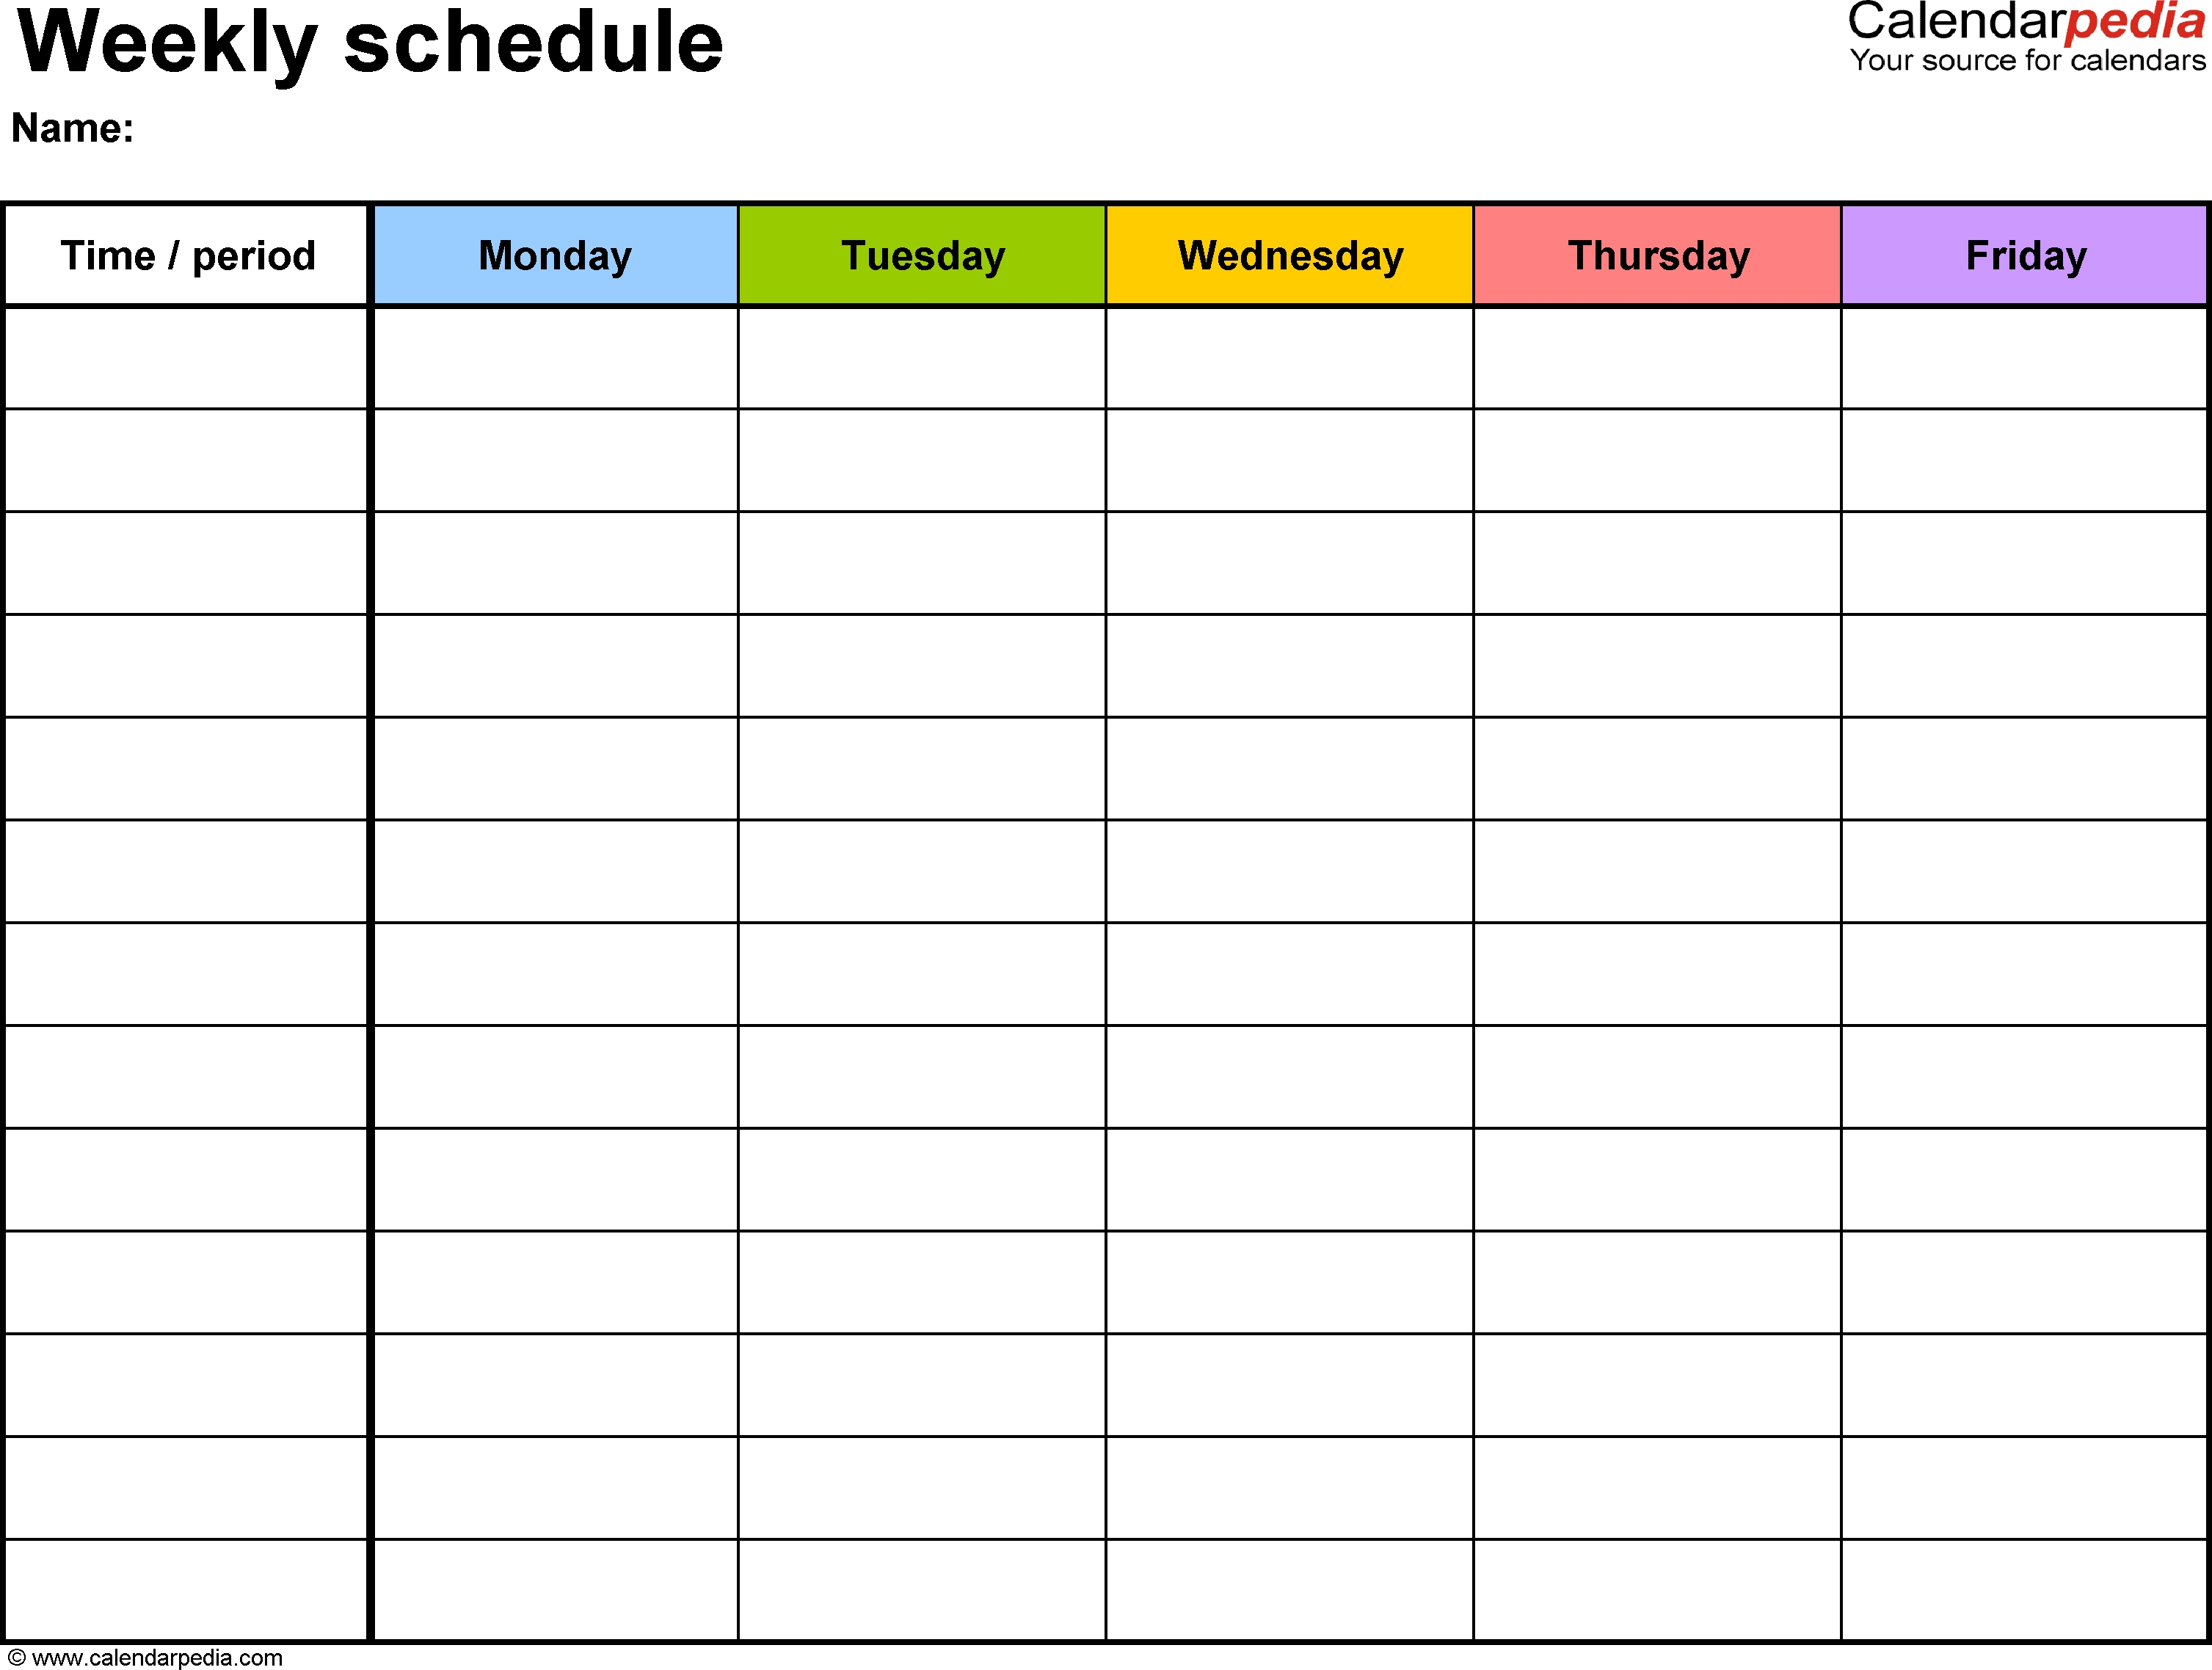 Free Weekly Schedule Templates For Word - 18 Templates inside Calendar Template Monday To Sunday